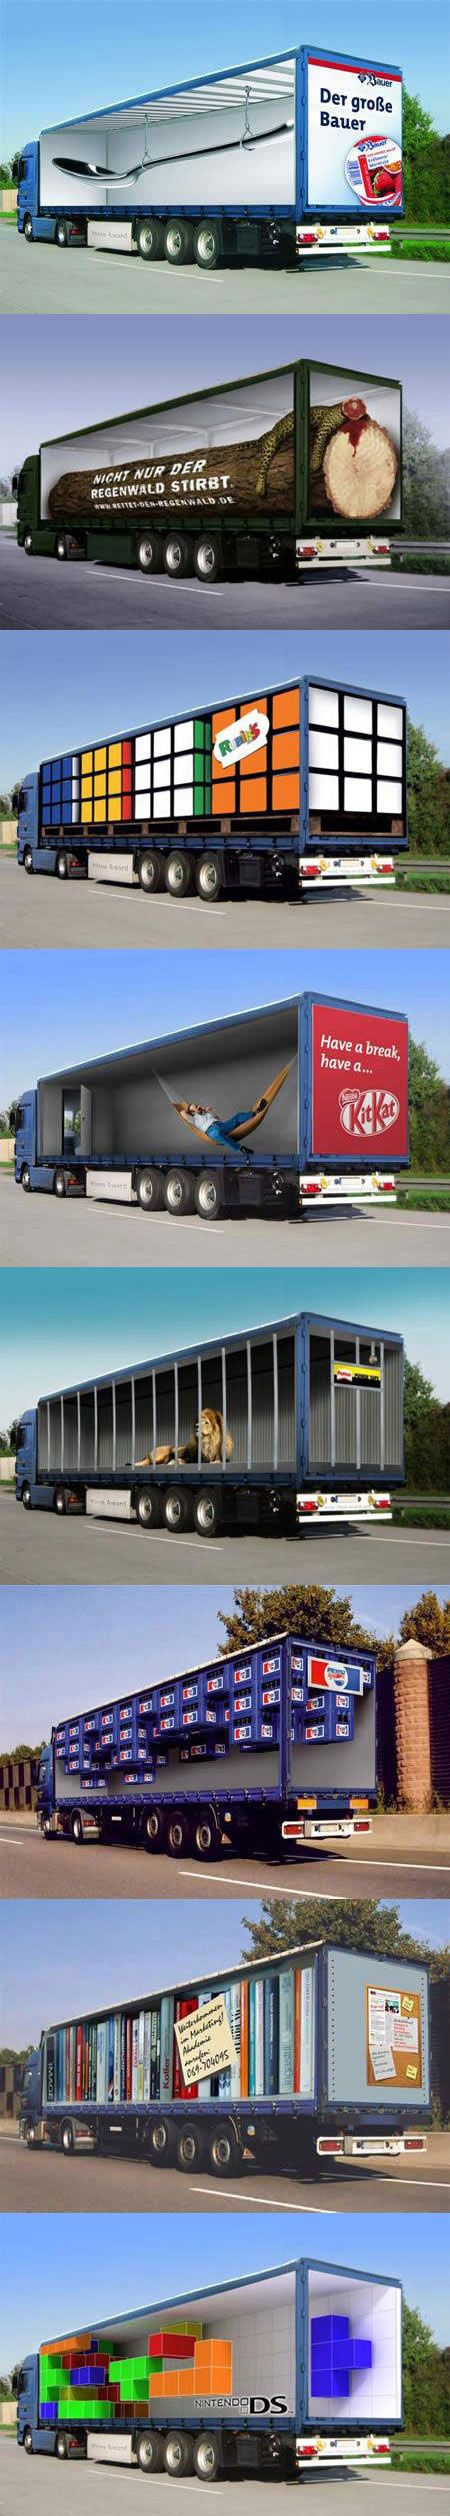 Here are some clever optical illusion truck ads that designed to play mind tricks.